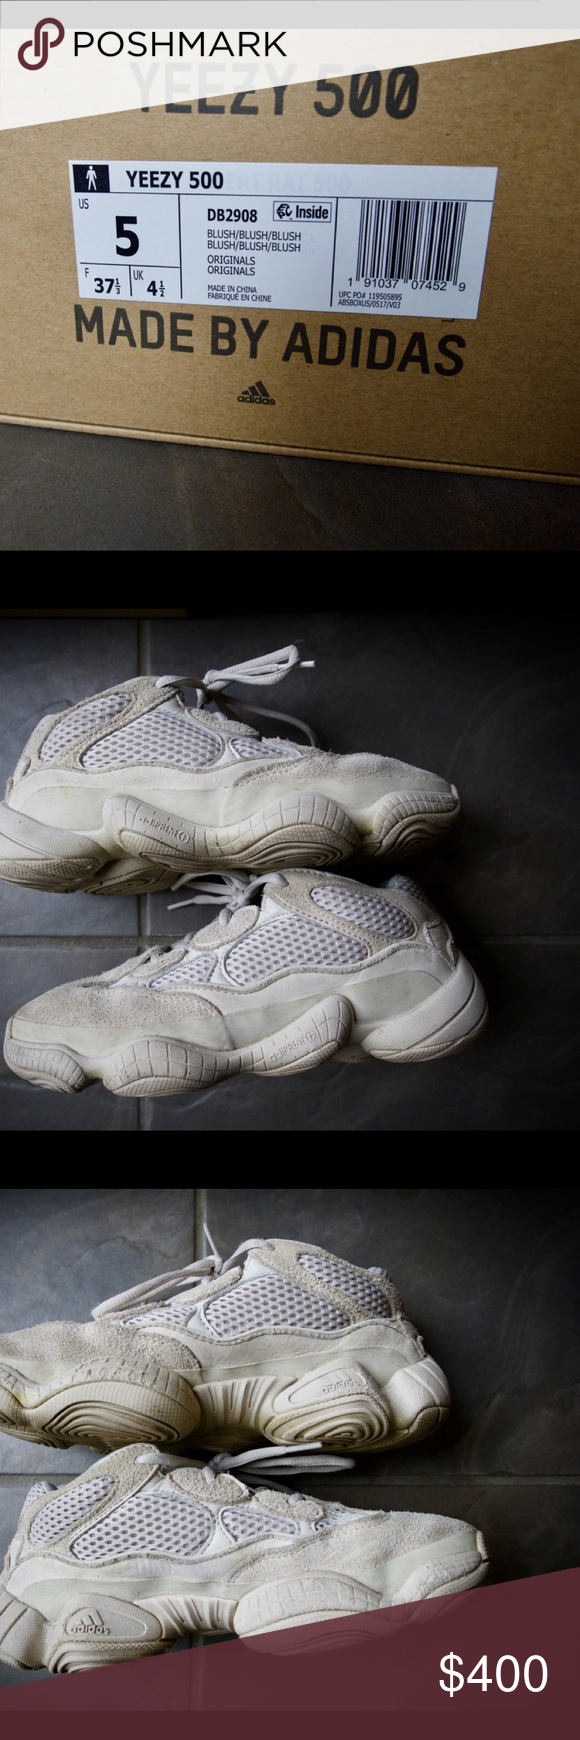 d7b1264a2 My son s gently used Yeezy 500 Initially released in February 2018 as a limited  pre-